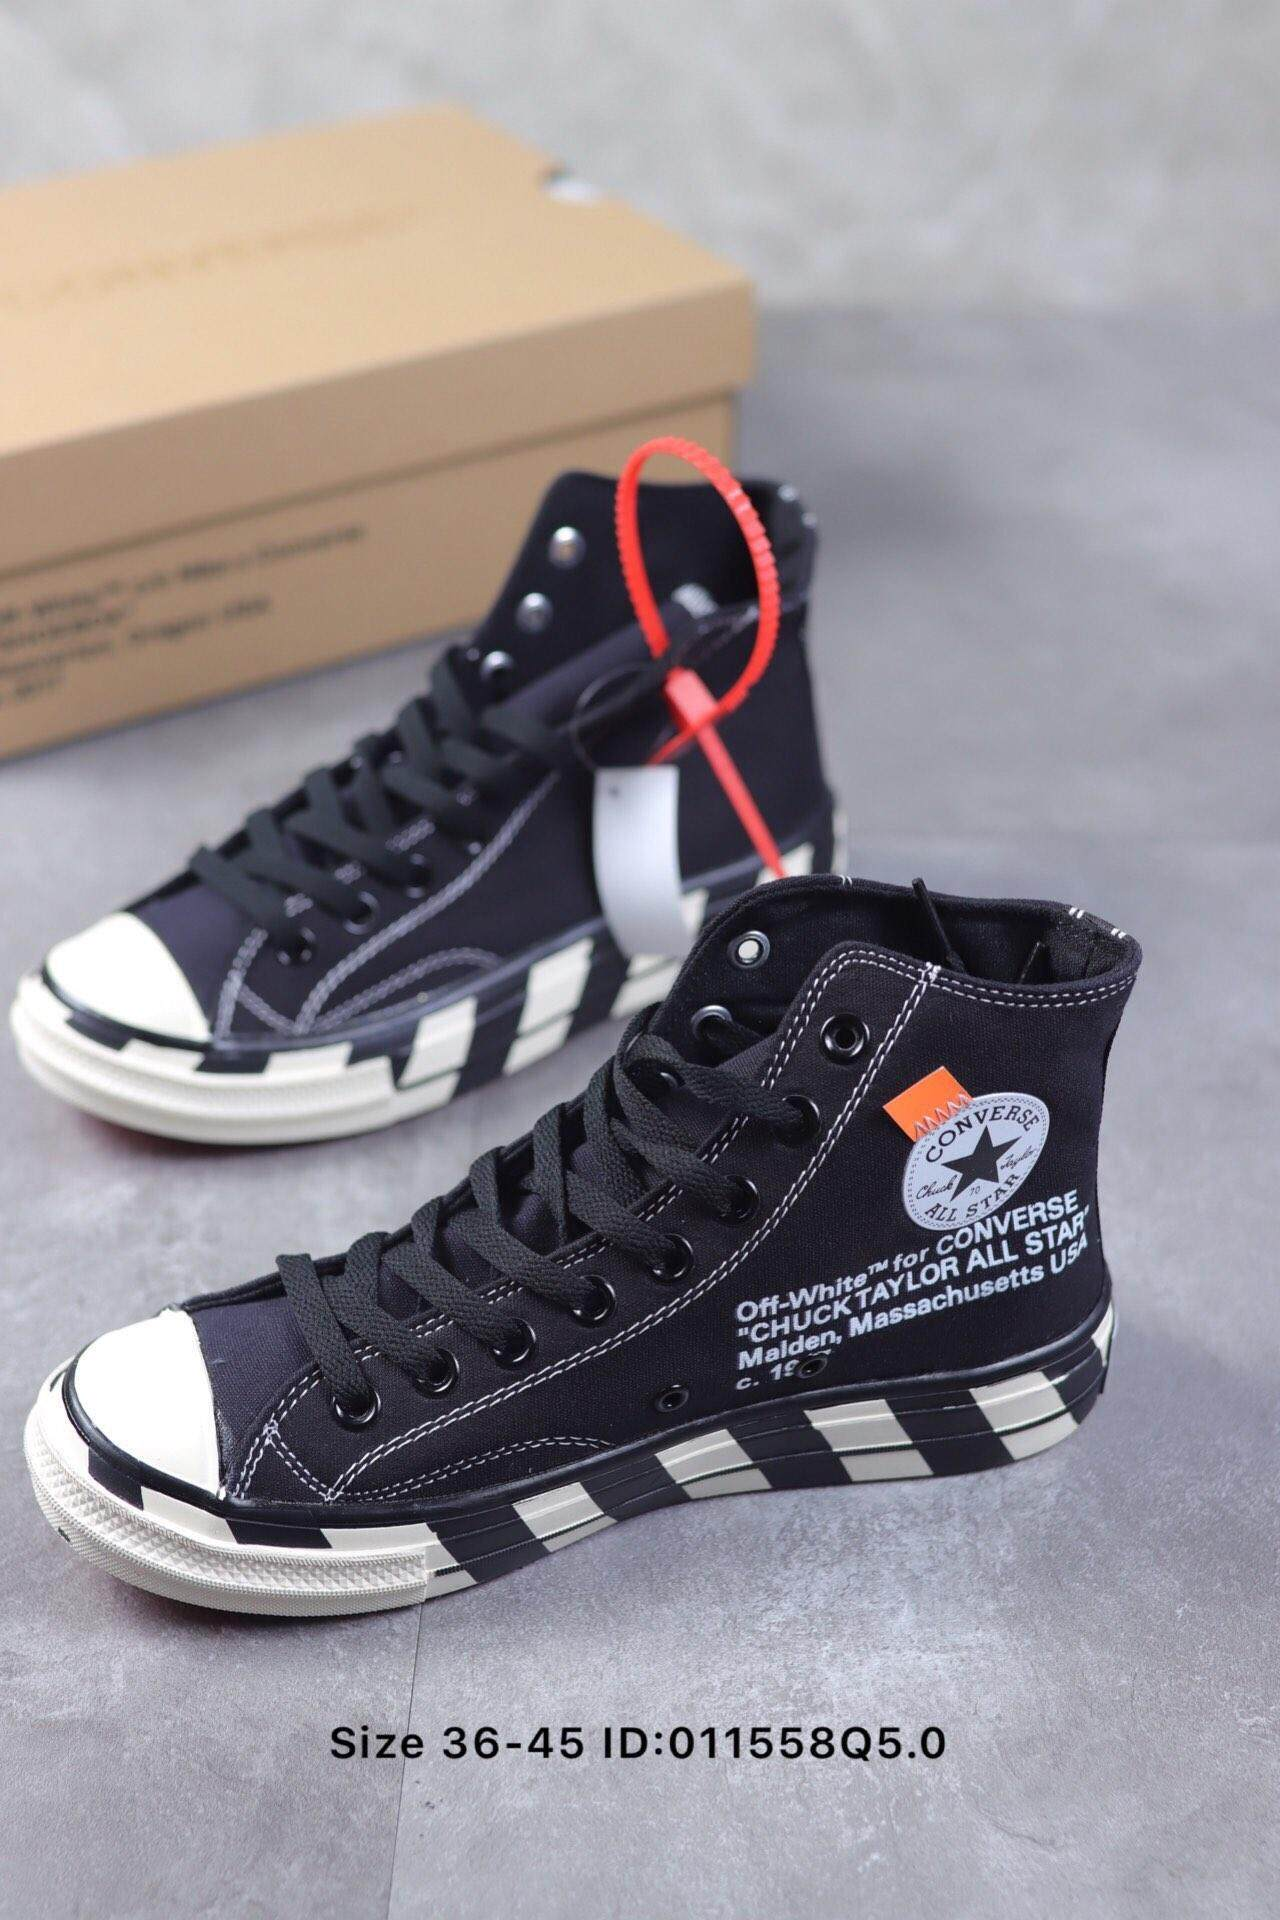 d952e2f0b6b8 Converse Sneakers for the Best Price in Malaysia